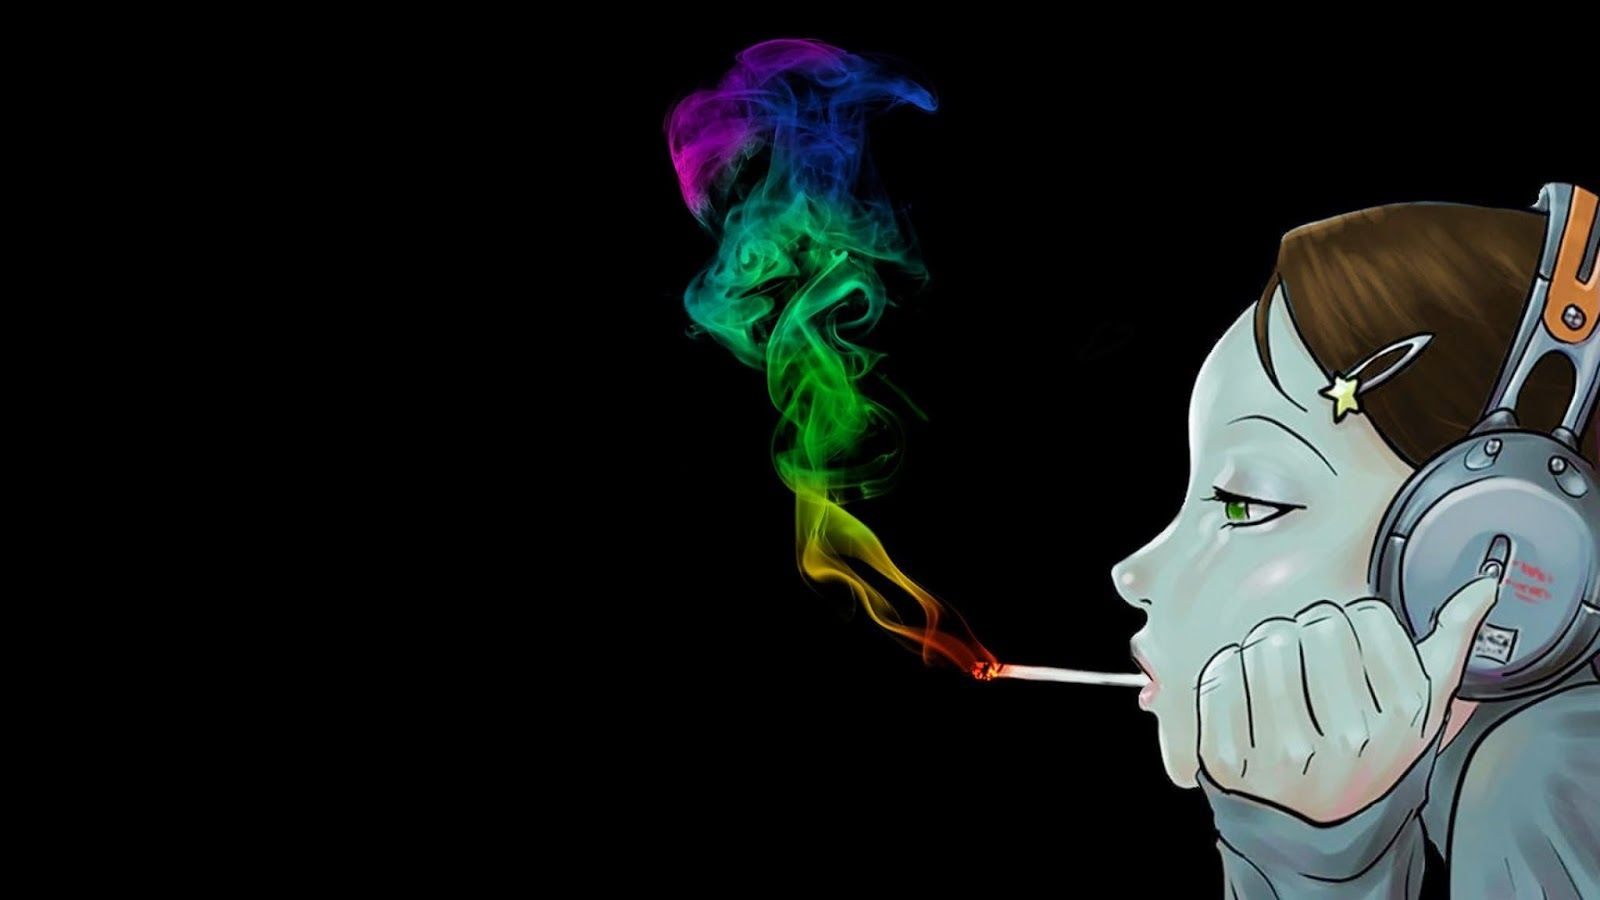 Anime Characters Smoking Weed : Trippy stoner art